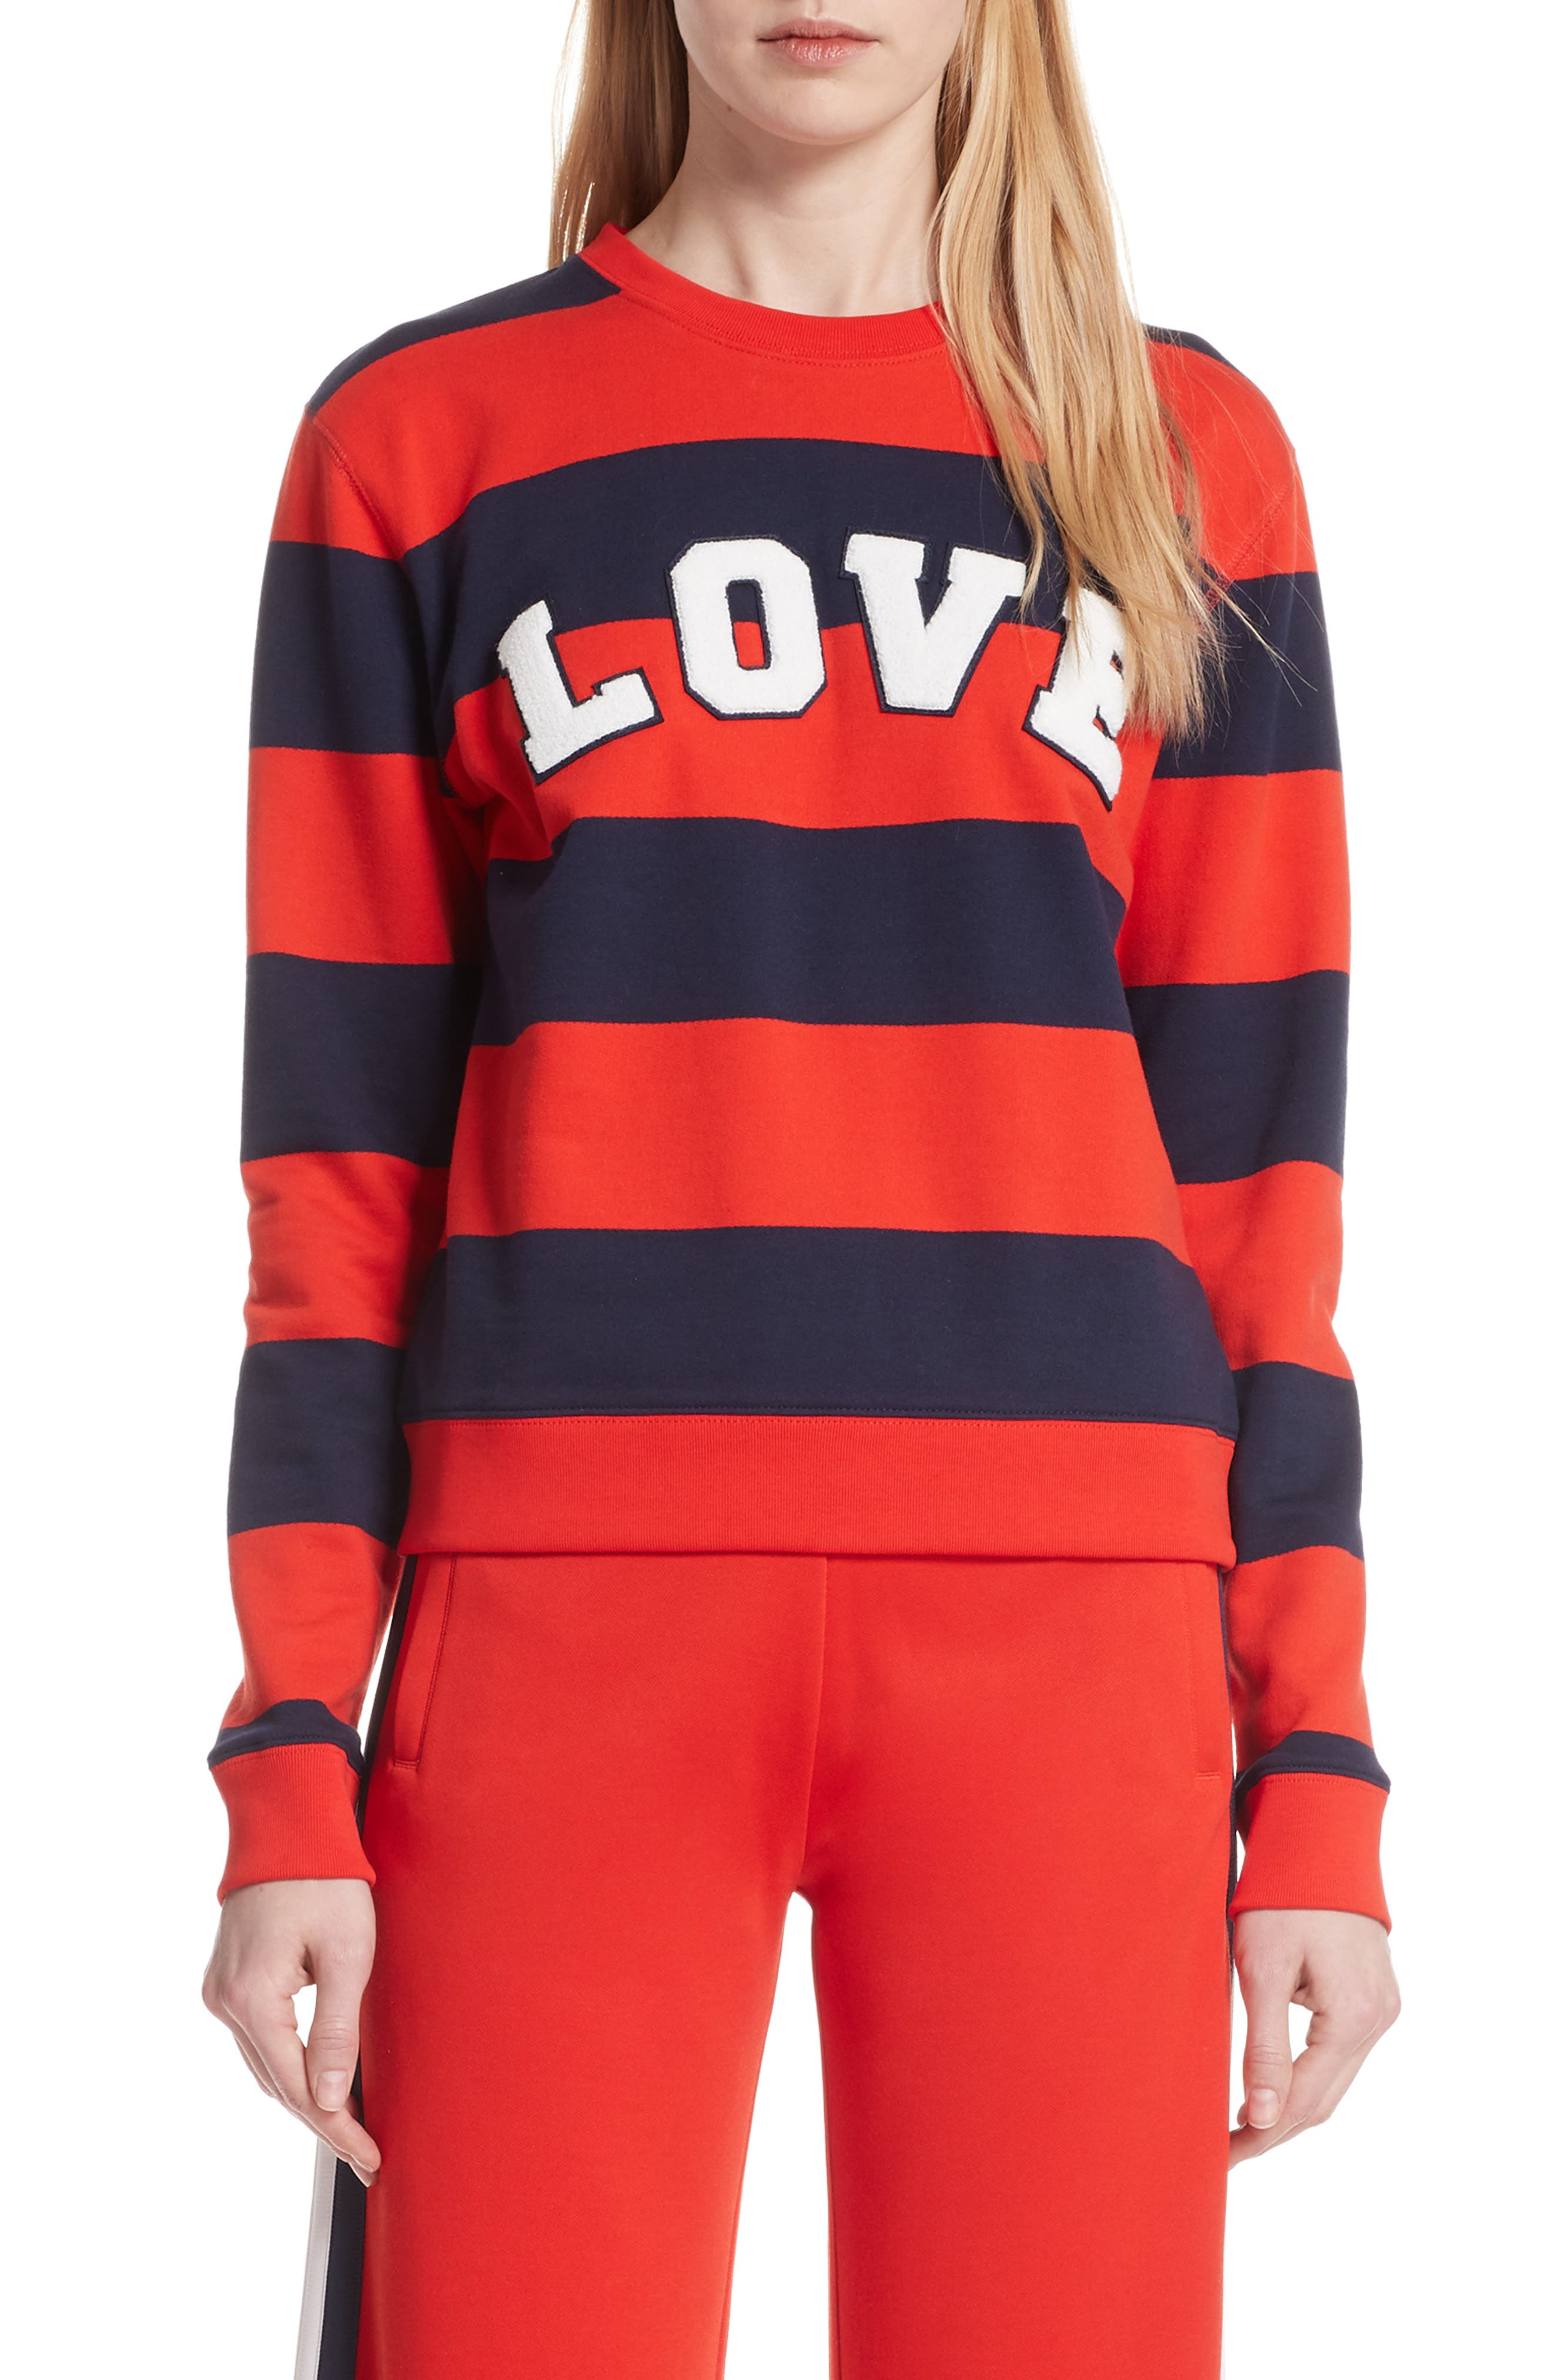 Love Stripe Sweatshirt,                             Main thumbnail 1, color,                             RED BROAD STRIPE